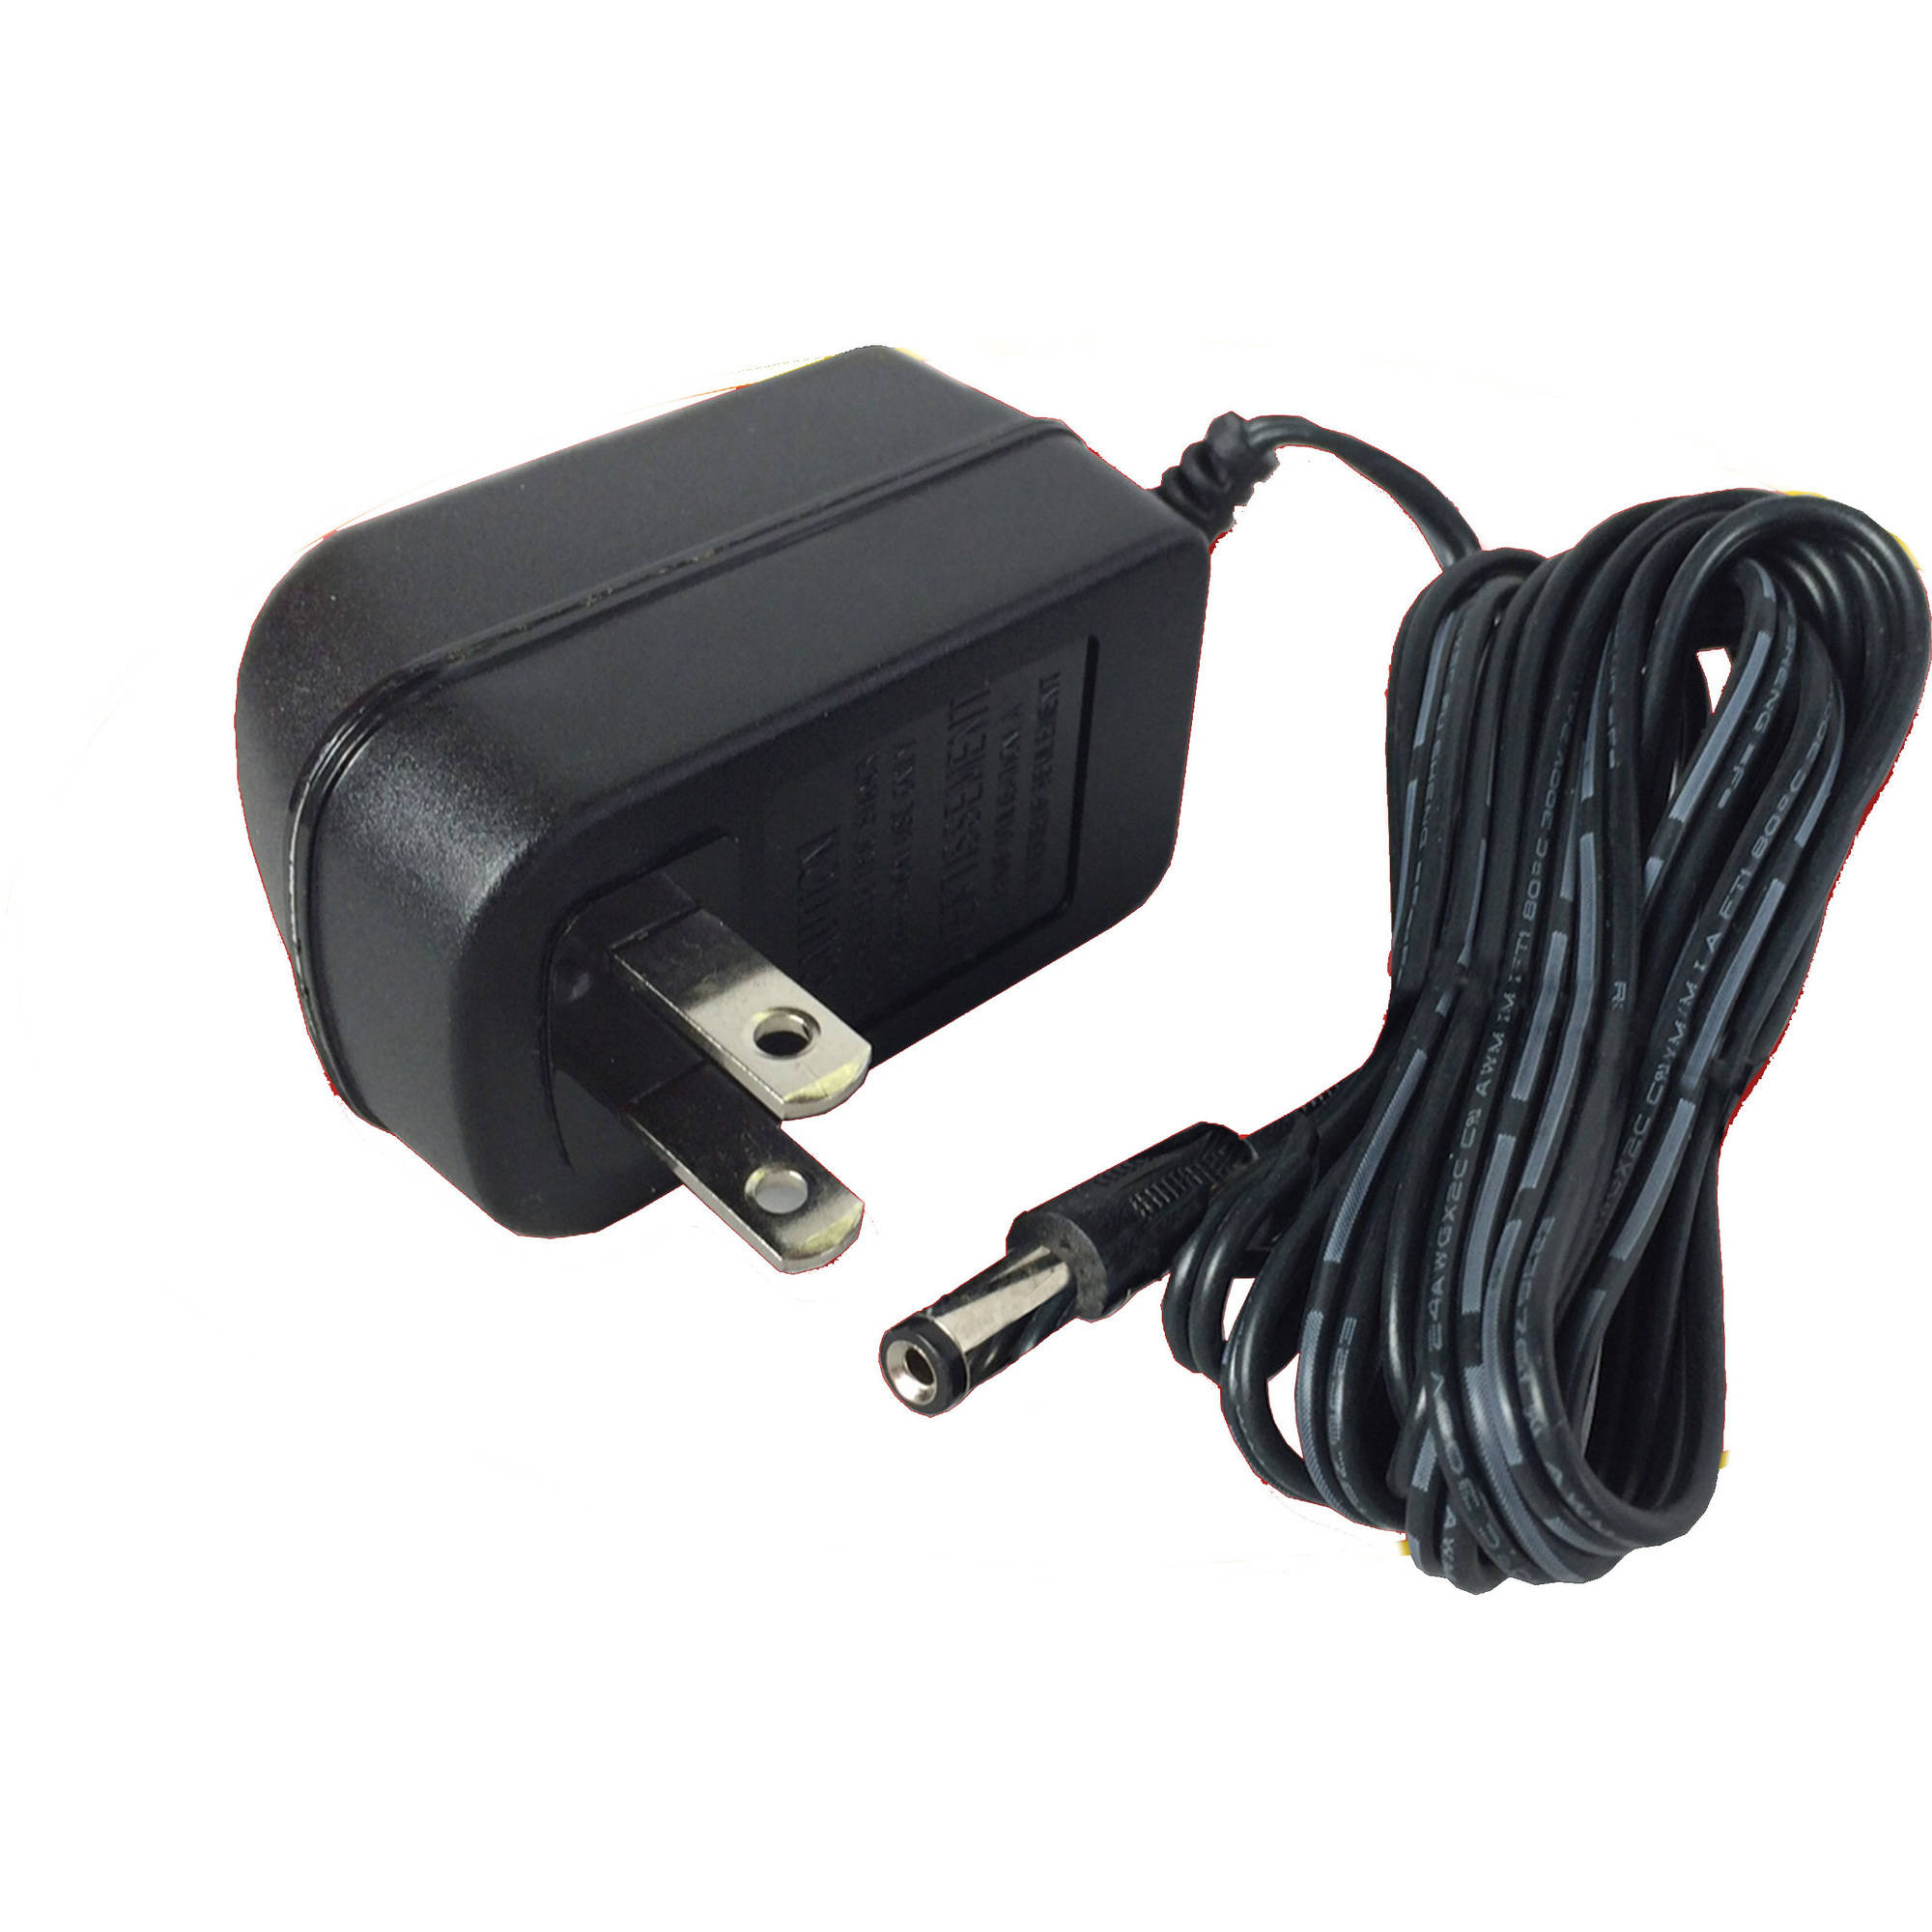 Aqua Culture 4.5V Power Adapter for Aquariums with Battery-Powered LED Lights